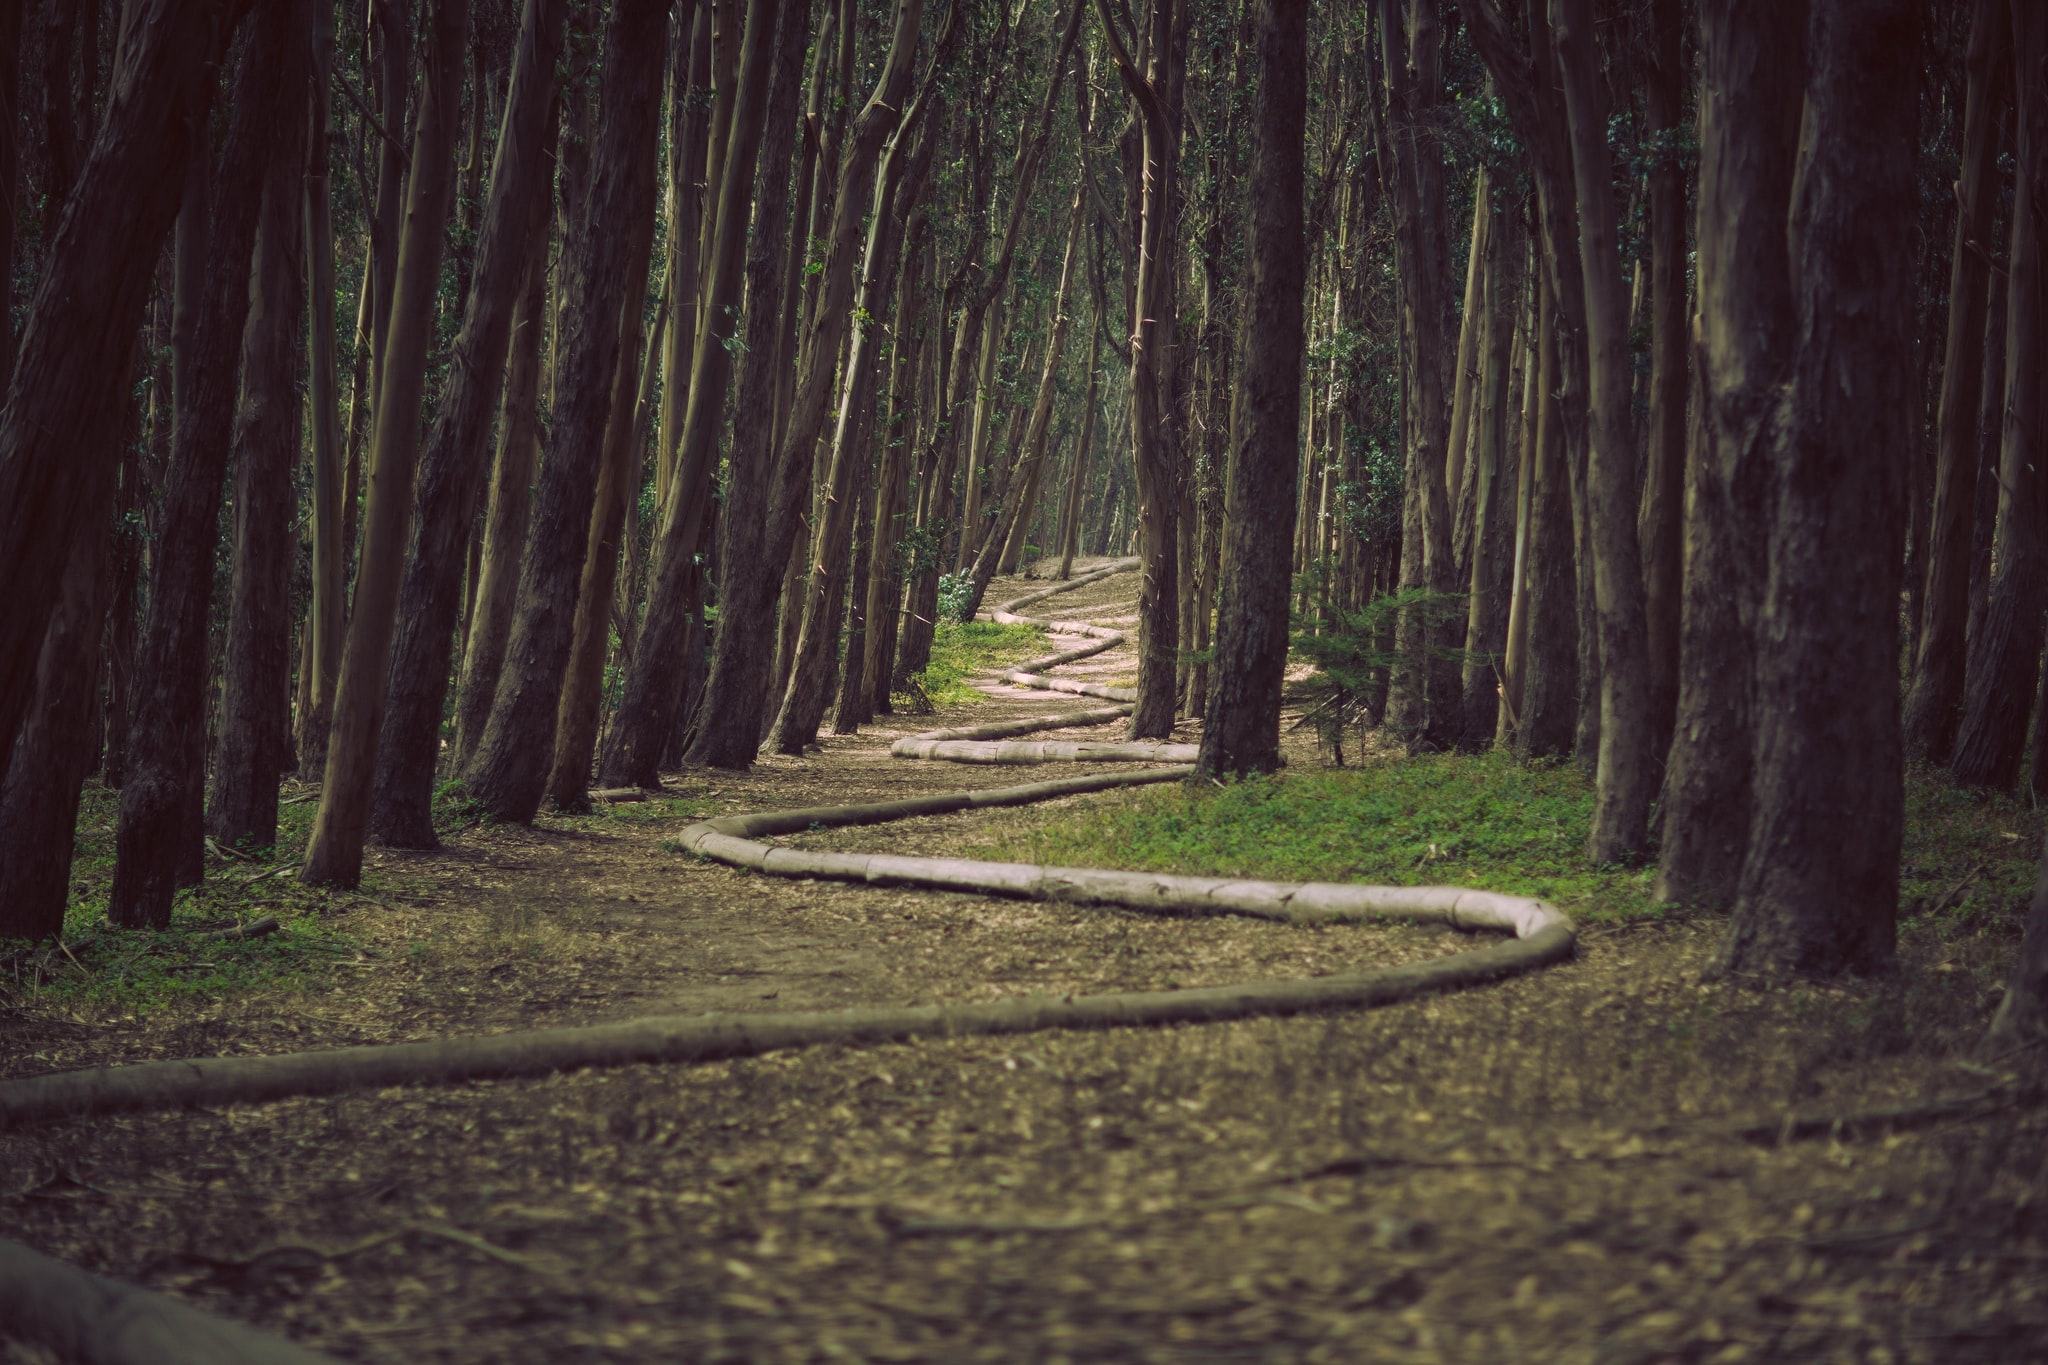 A zig zagging path in between tree trunks in a forest at the Wood Line